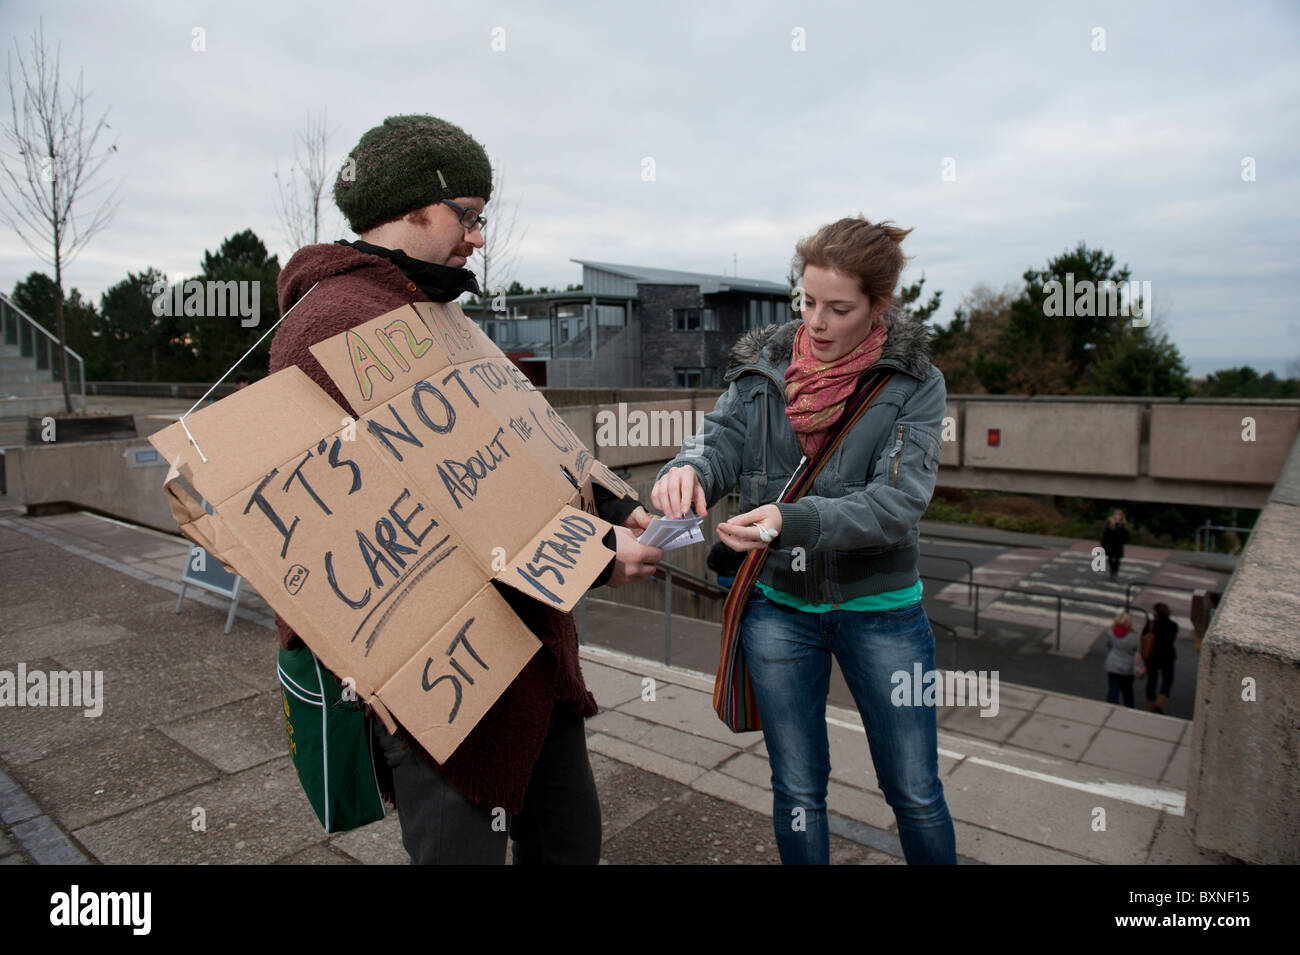 Aberystwyth University Students protesting about the cuts in higher education funding, Wales UK - Stock Image